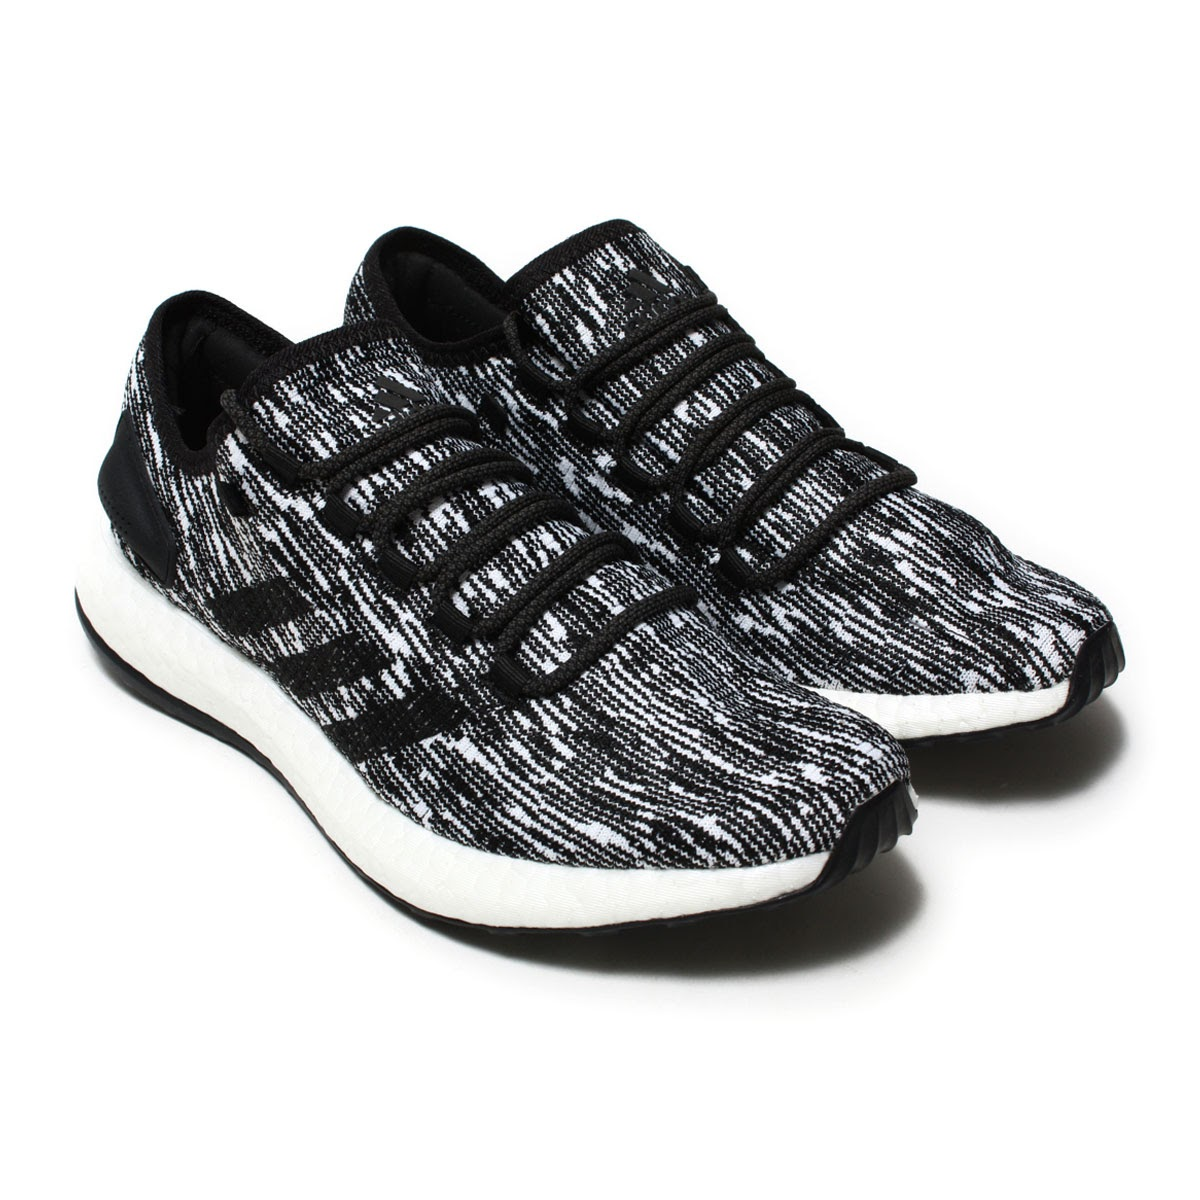 0bdd870480ec1 adidas Originals PureBOOST LTD (Adidas originals pure boost LTD) Core Black Running  White Running White 17FW-I